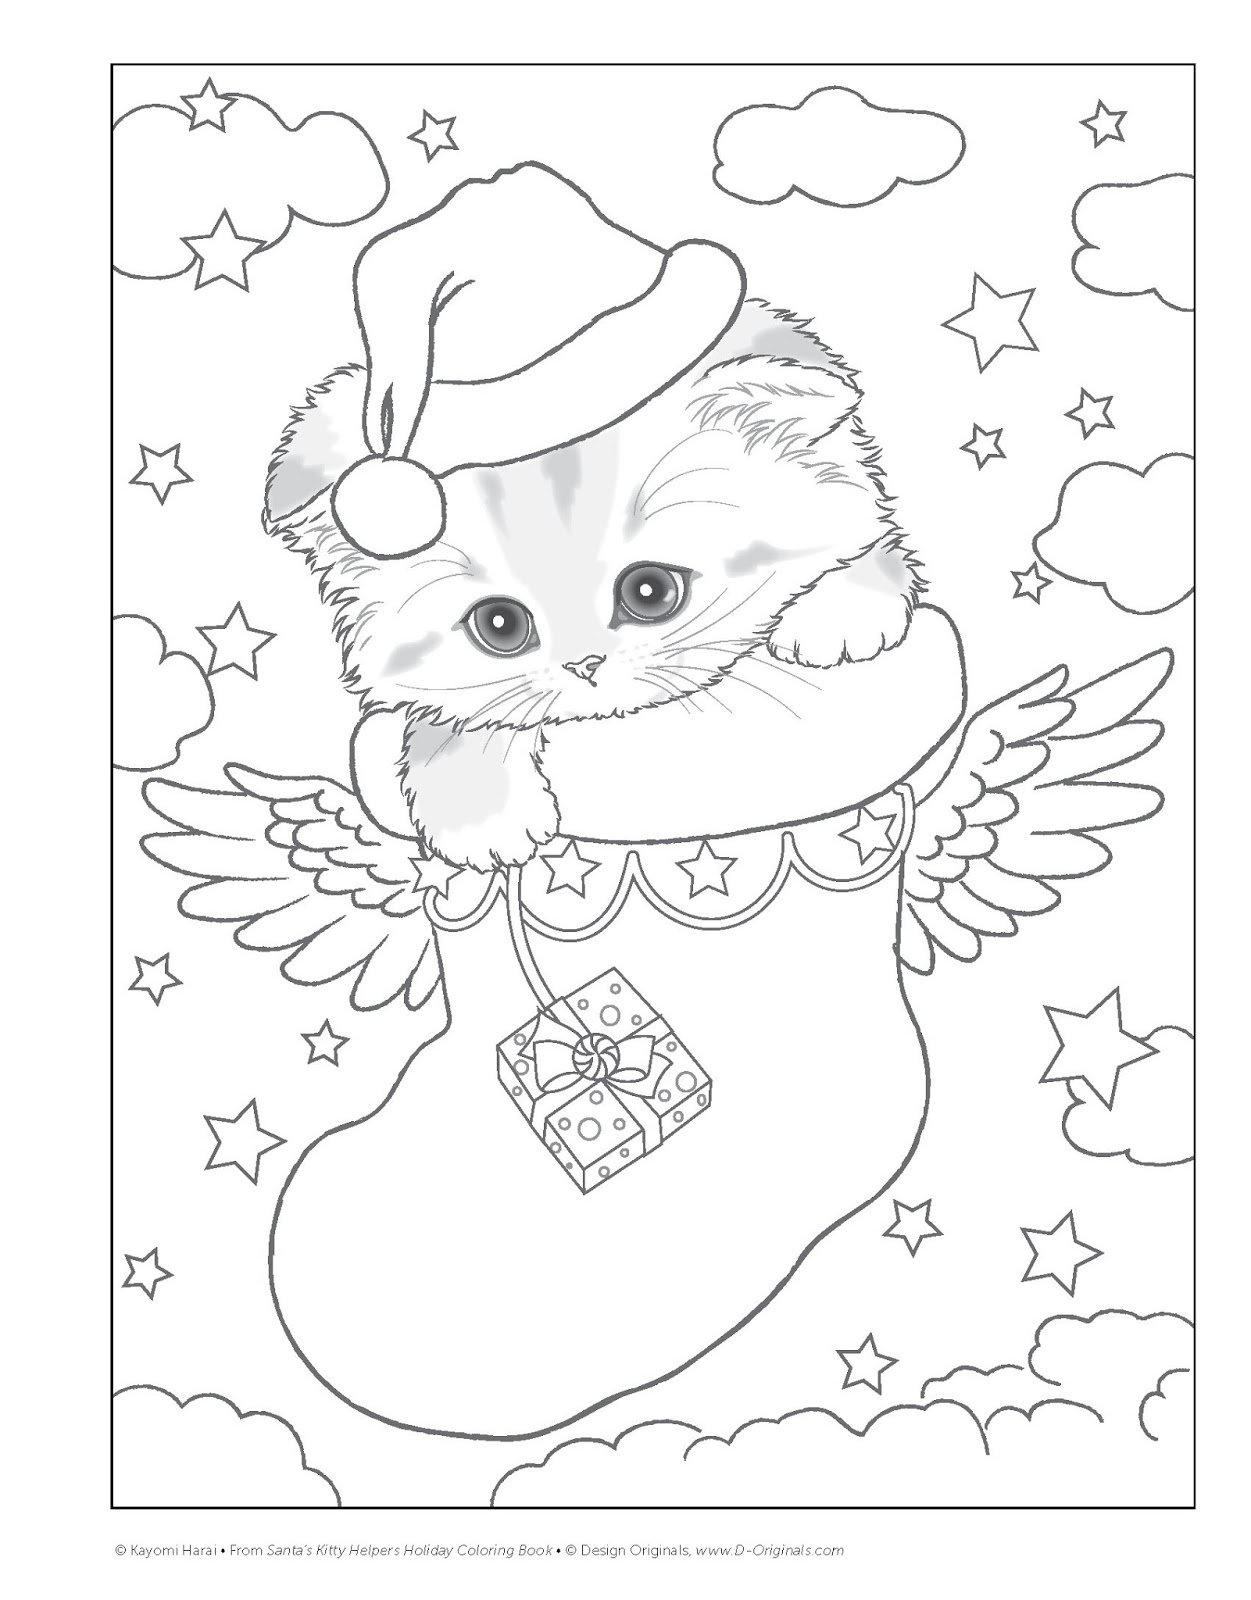 Green and Glassie: Santa\'s Kitty Helpers - Holiday Coloring Book